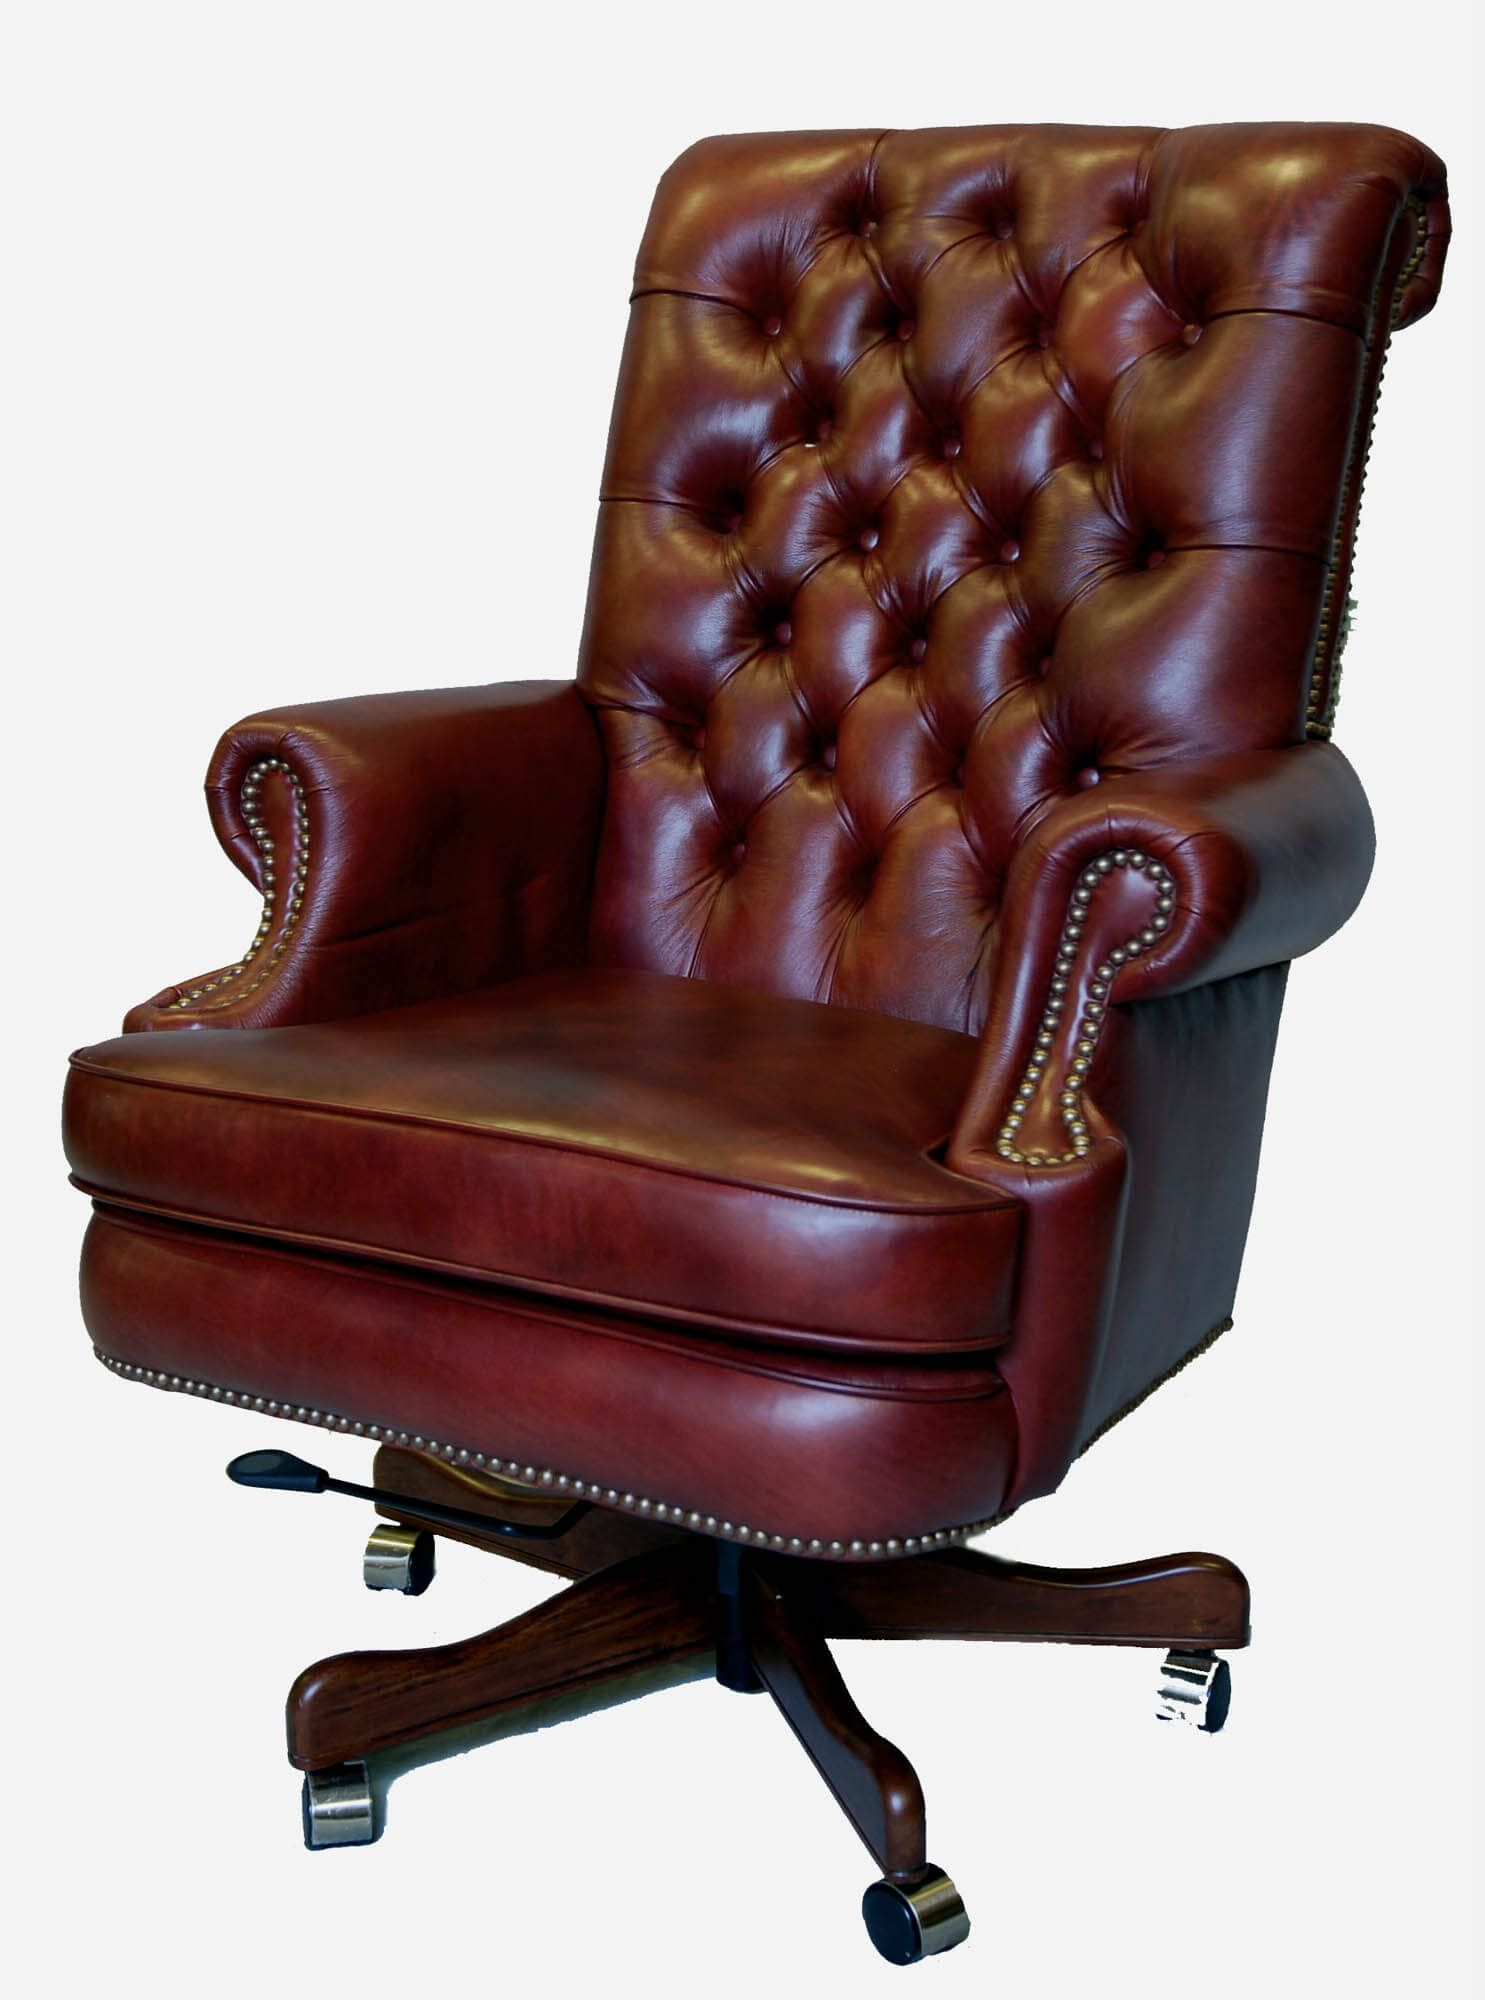 revolving chair supplier serta bonded leather executive chairs manufacturers and dealers in new delhi